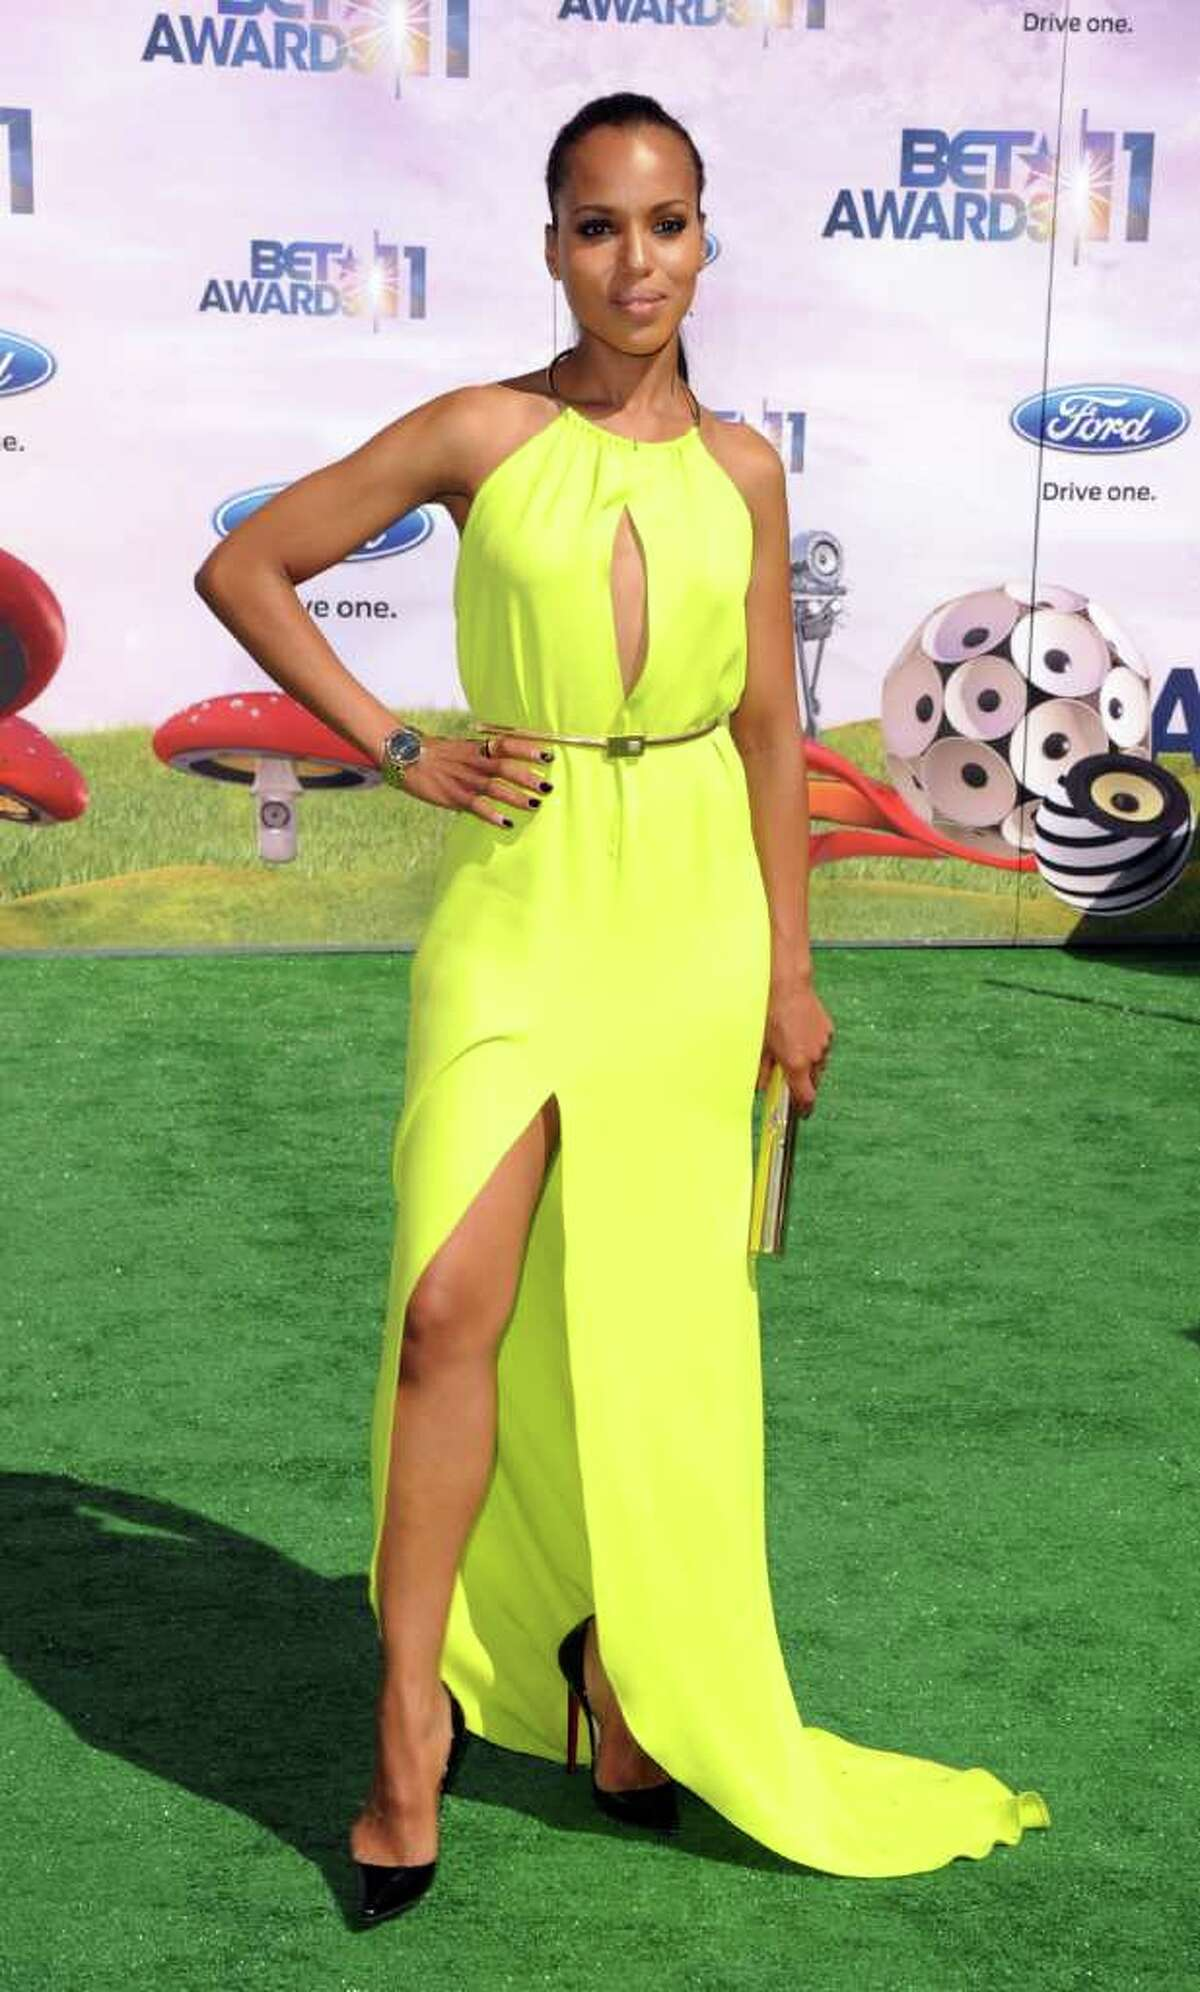 Actress Kerry Washington arrives at the BET Awards '11 held at the Shrine Auditorium in Los Angeles on Sunday, June 26, 2011.